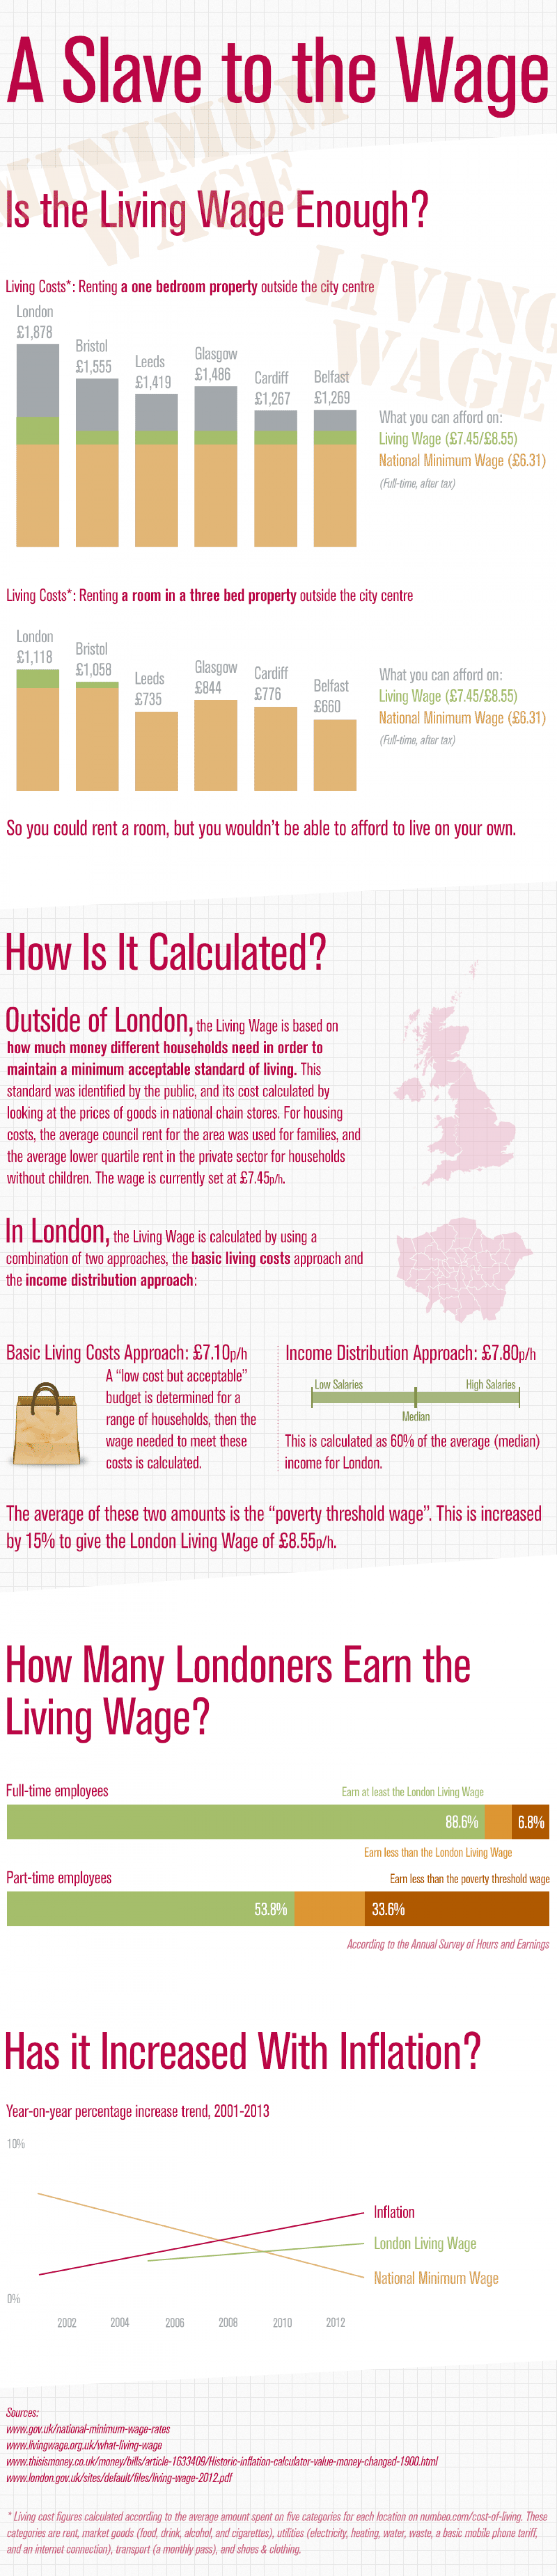 A Slave to the Wage Infographic